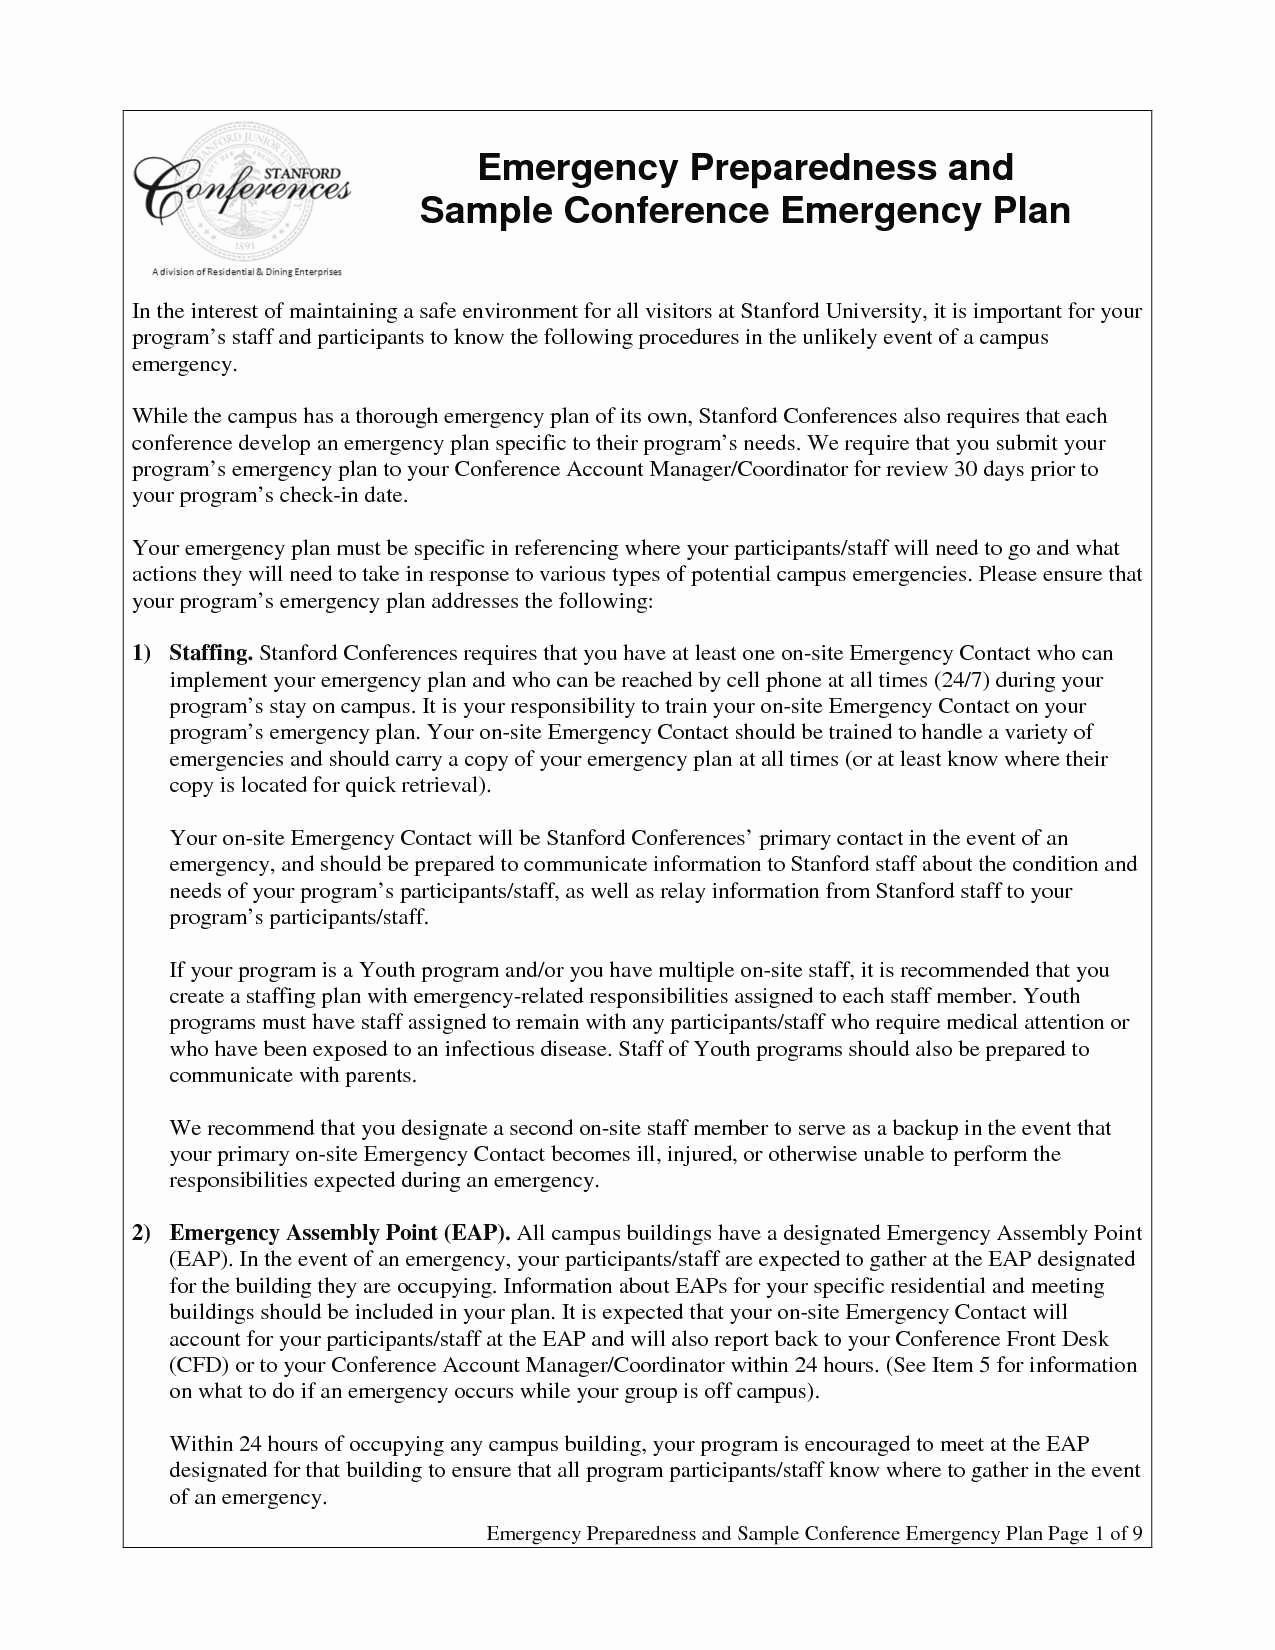 Emergency Operations Plan Template Unique Lovely School Emergency Operations Plan Template